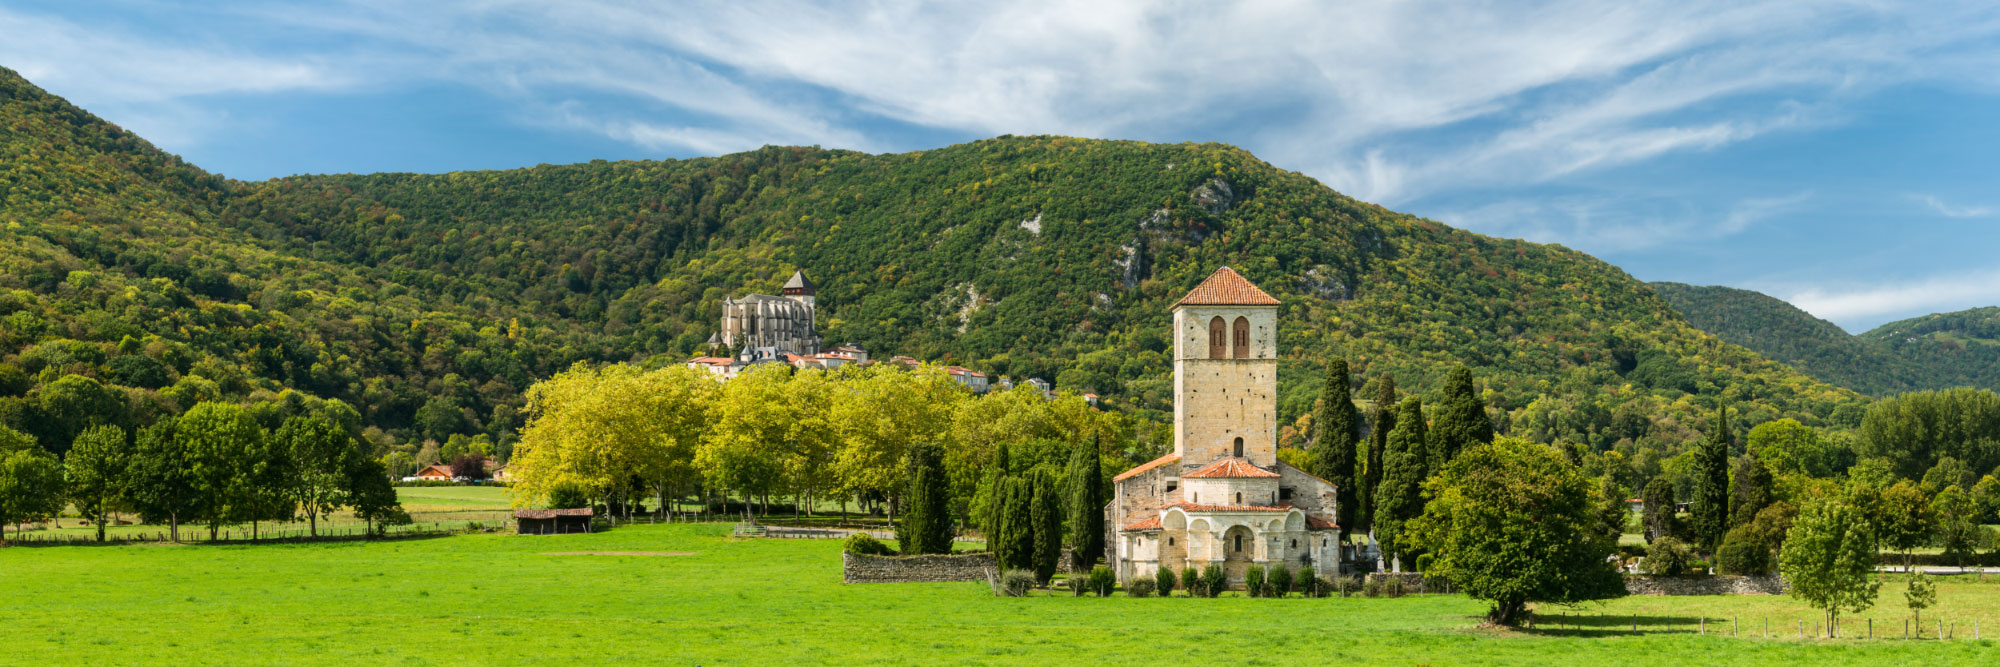 Saint-Bertrand-de-Comminges et la basilique Saint-Just de Valcabrère (au premier plan)